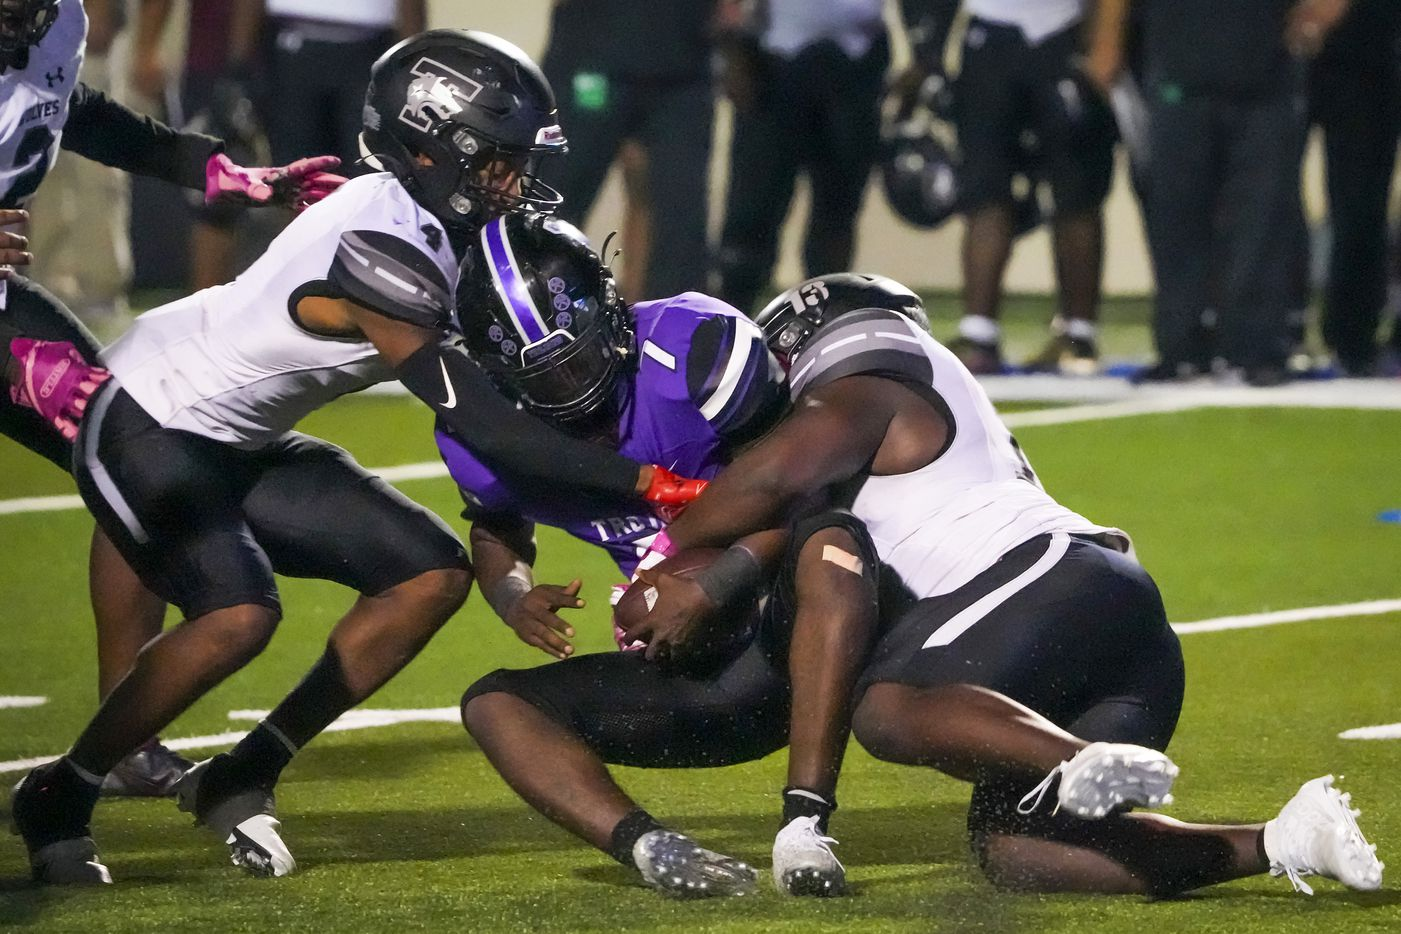 Waco University quarterback Damarion Chambers (7) is dropped for a loss by Mansfield Timberview's Kye Nash (13) and Jonathan Smith (4) during the first half of a high school football game at Waco ISD Stadium on Friday, Oct. 8, 2021, in Waco, Texas.